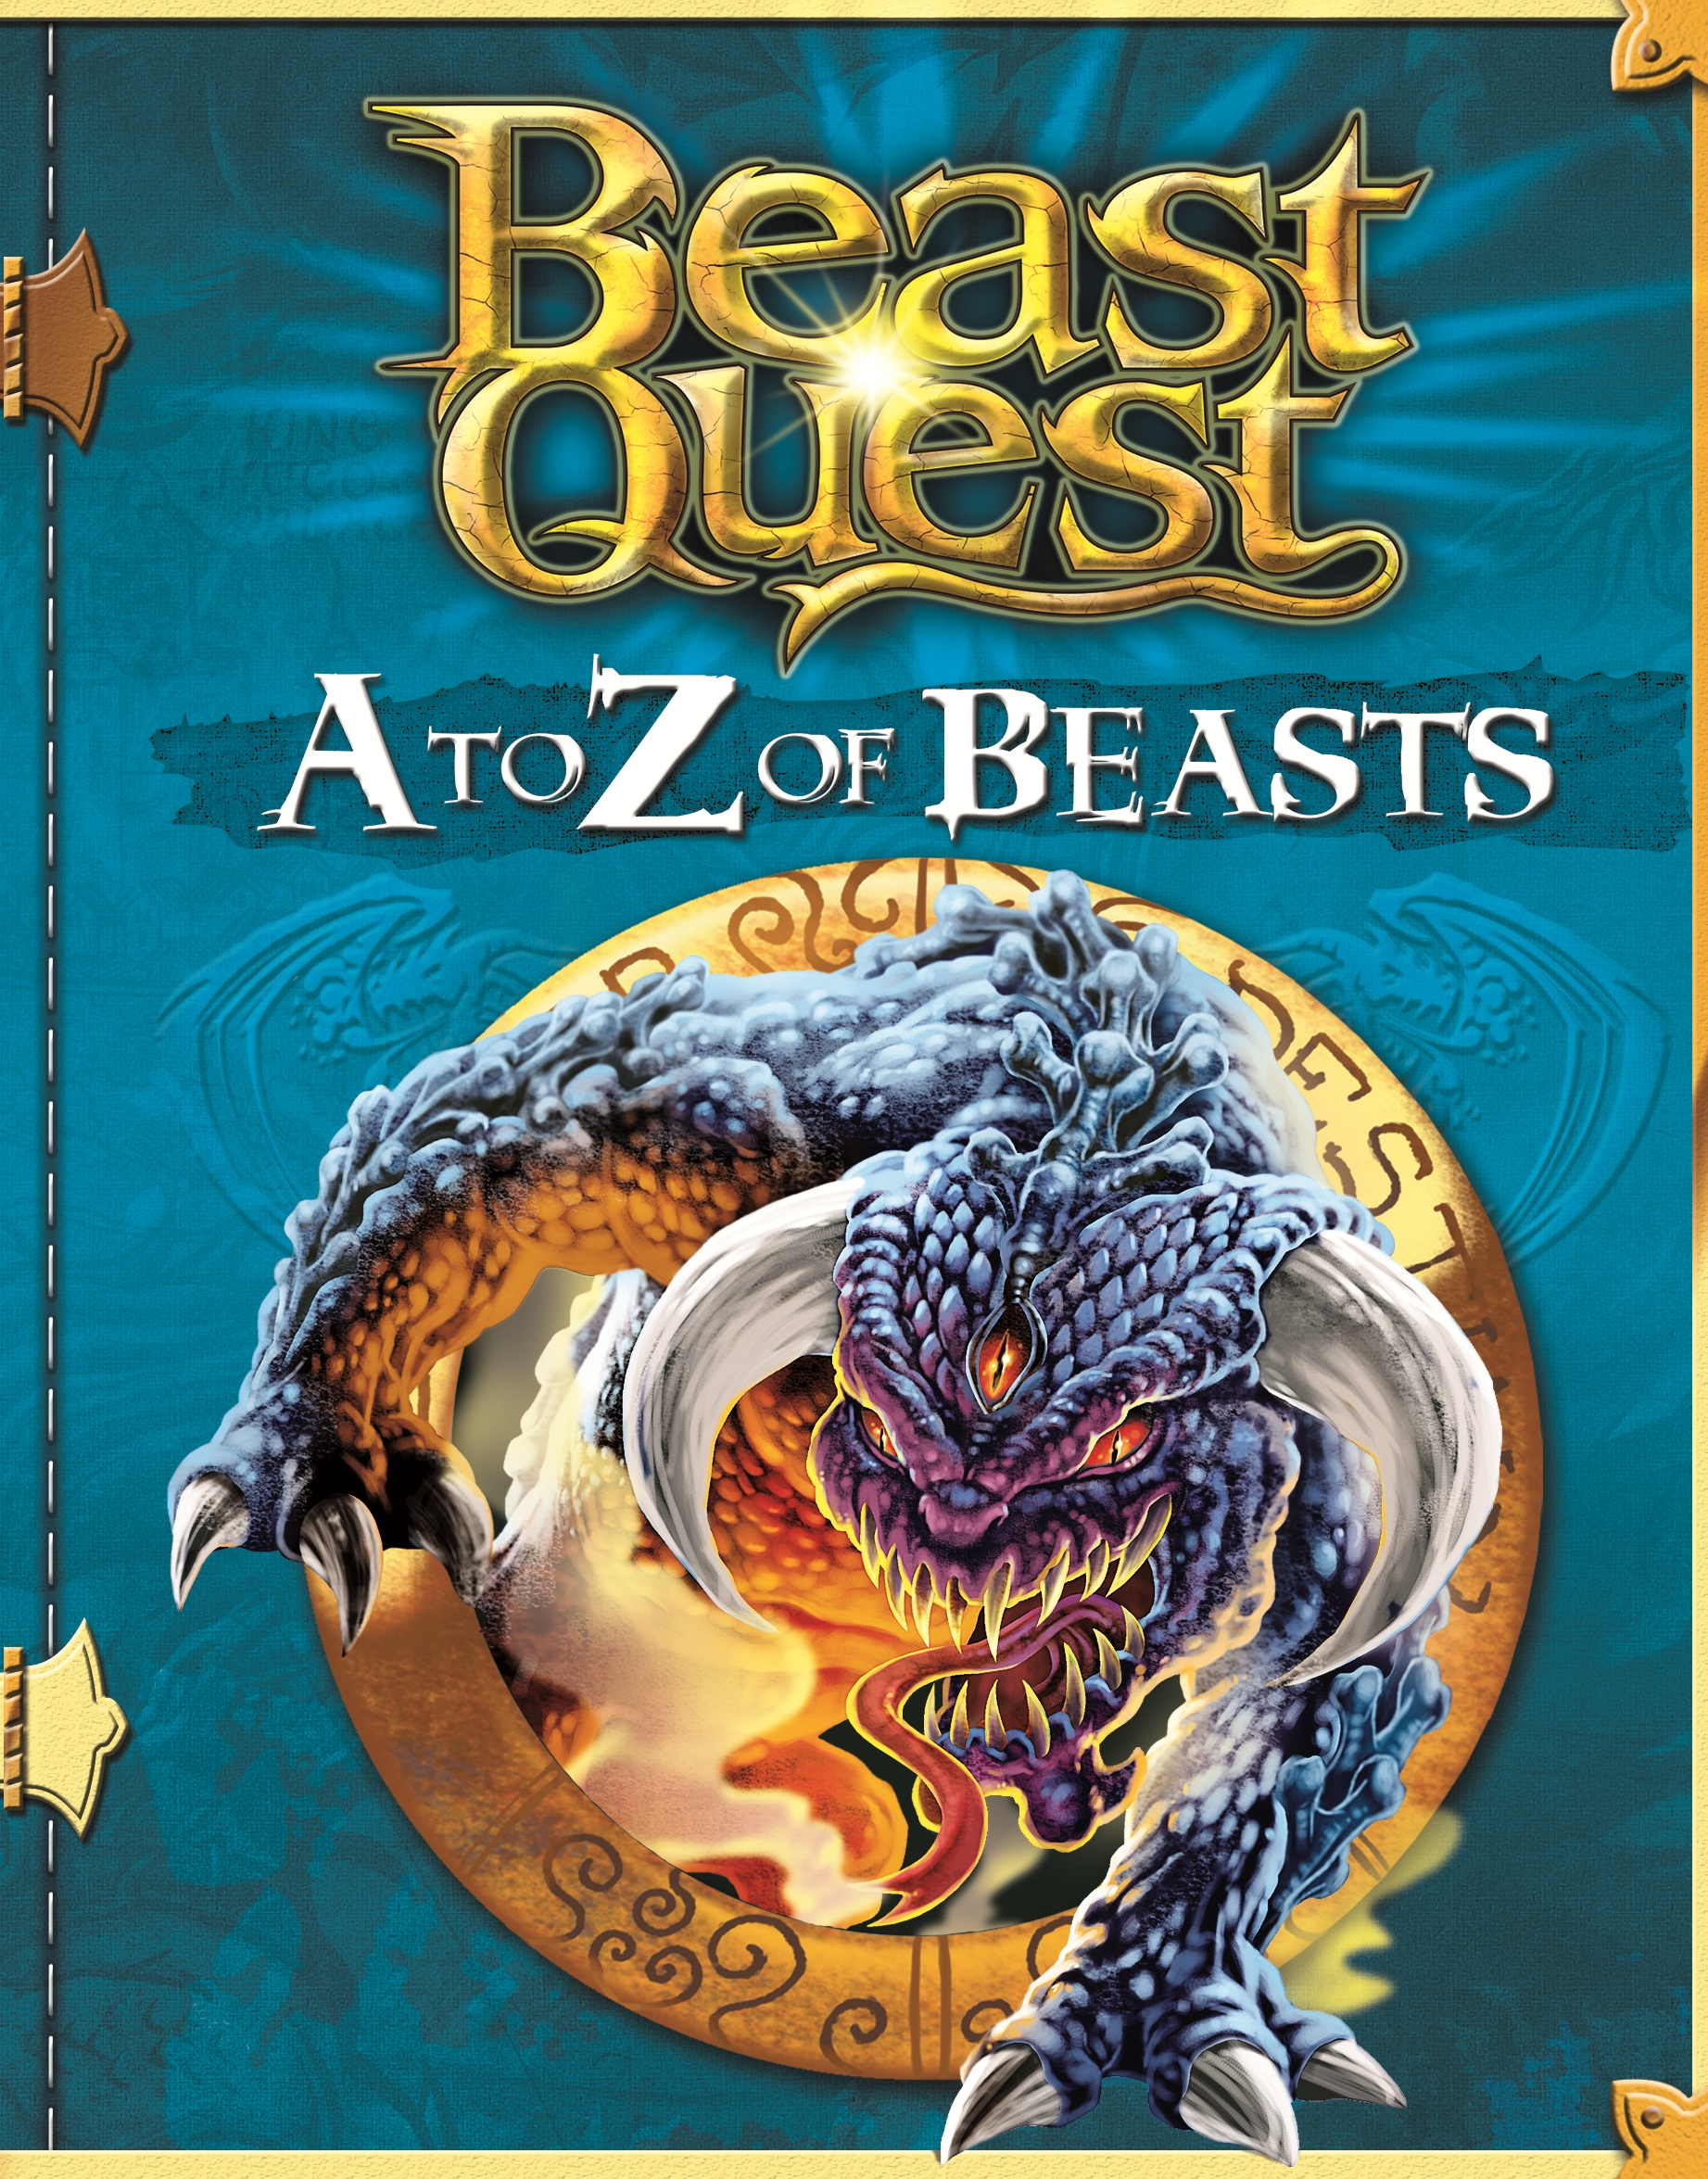 Beast Quest: A to Z of Beasts by Adam Blade, ISBN: 9781408338896